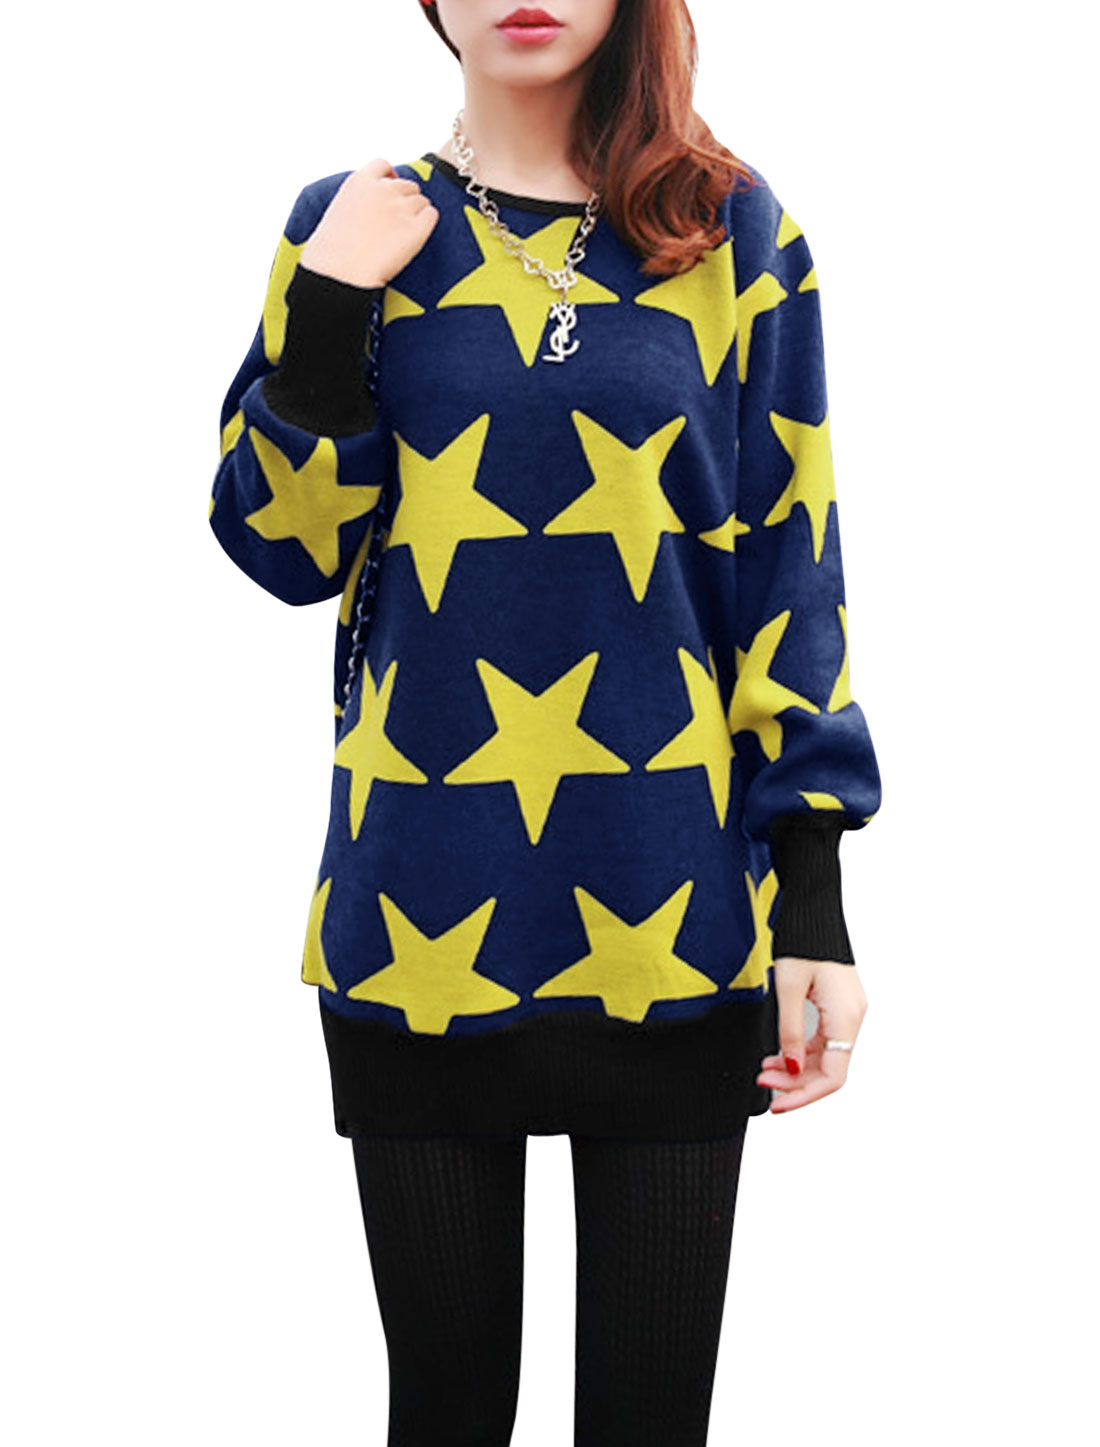 Lady Royal Blue Stars Prints Pullover Color Block Tunic Knit Shirt S